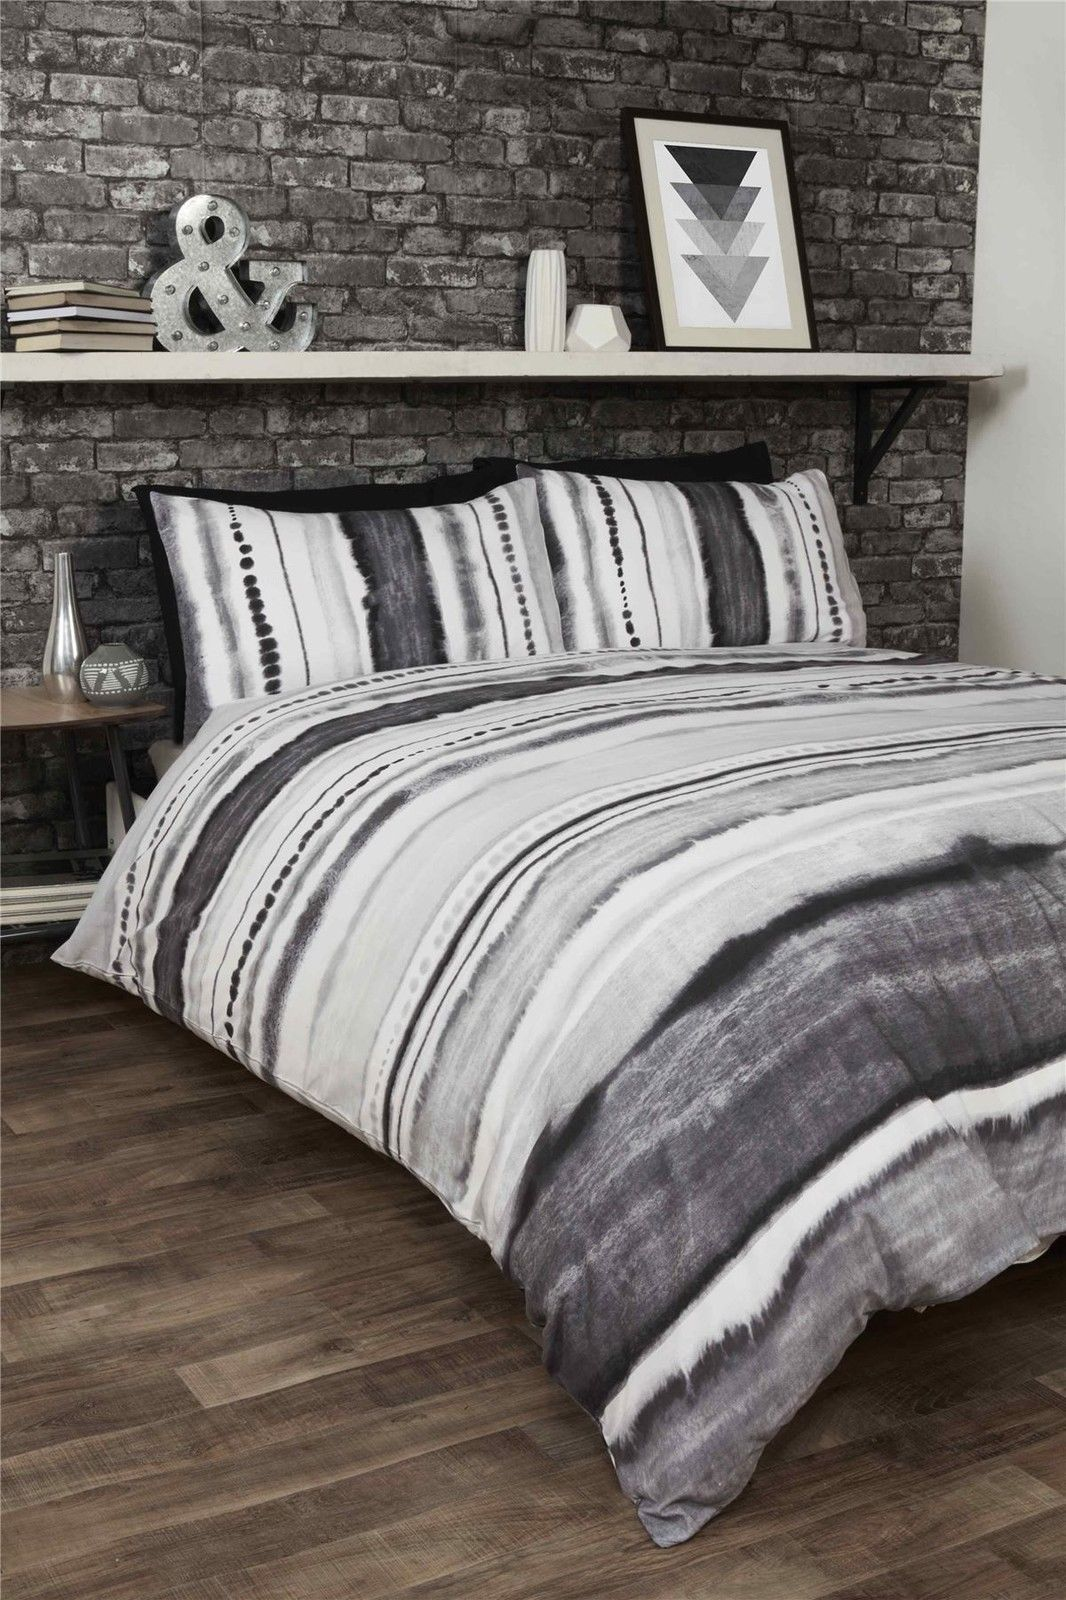 TIE DYED-STYLE GRADED STRIPE BLACK GREY WHITE COTTON BLEND KING SIZE DUVET COVER